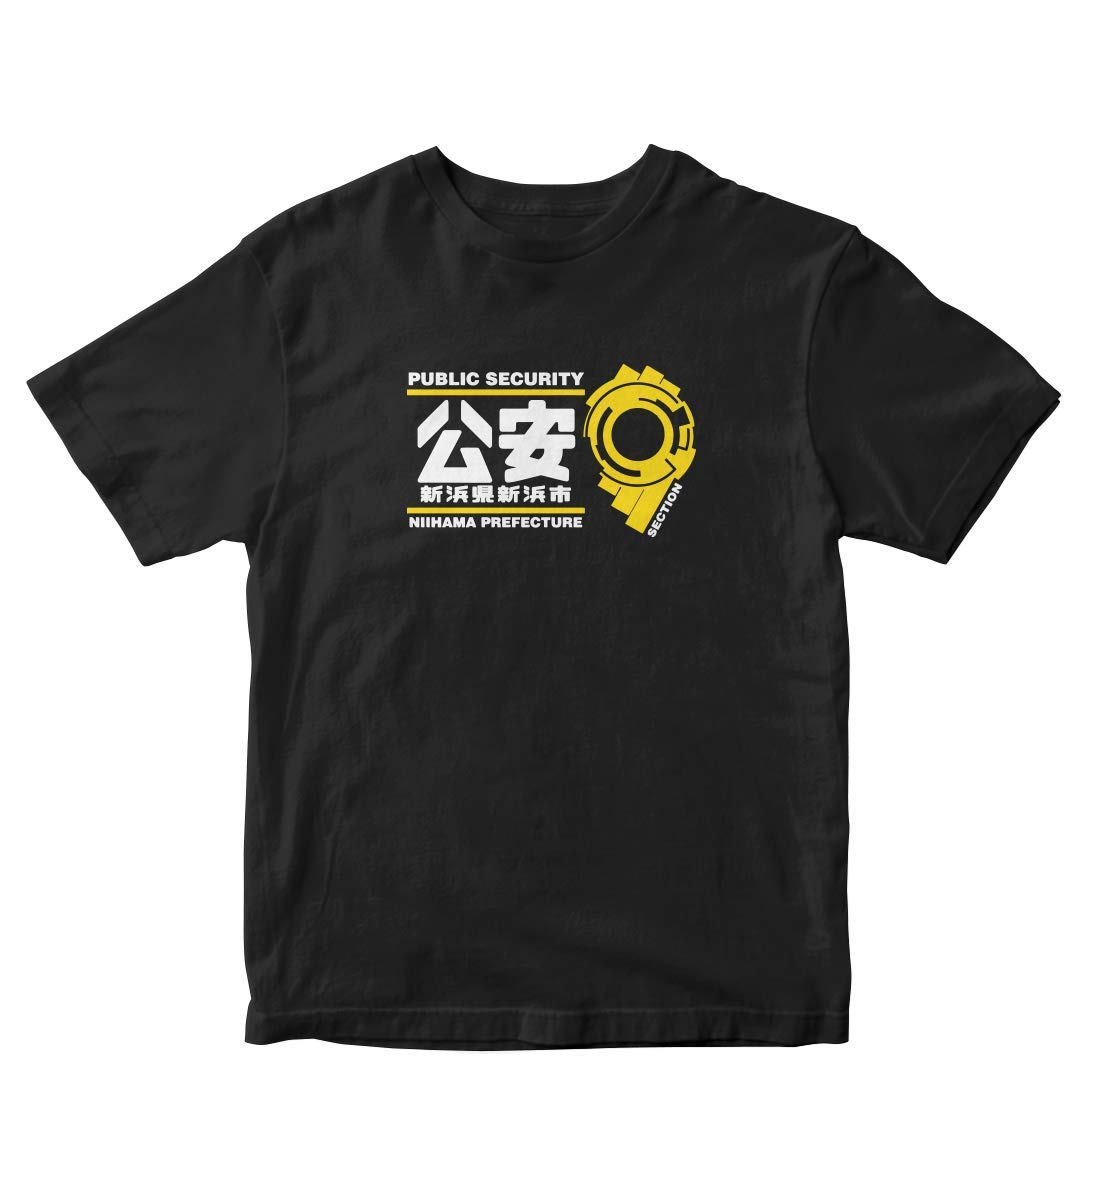 Public Security Niihama Prefecture Section 9 Ghost In The Shell S Shirt Black Anime Manga